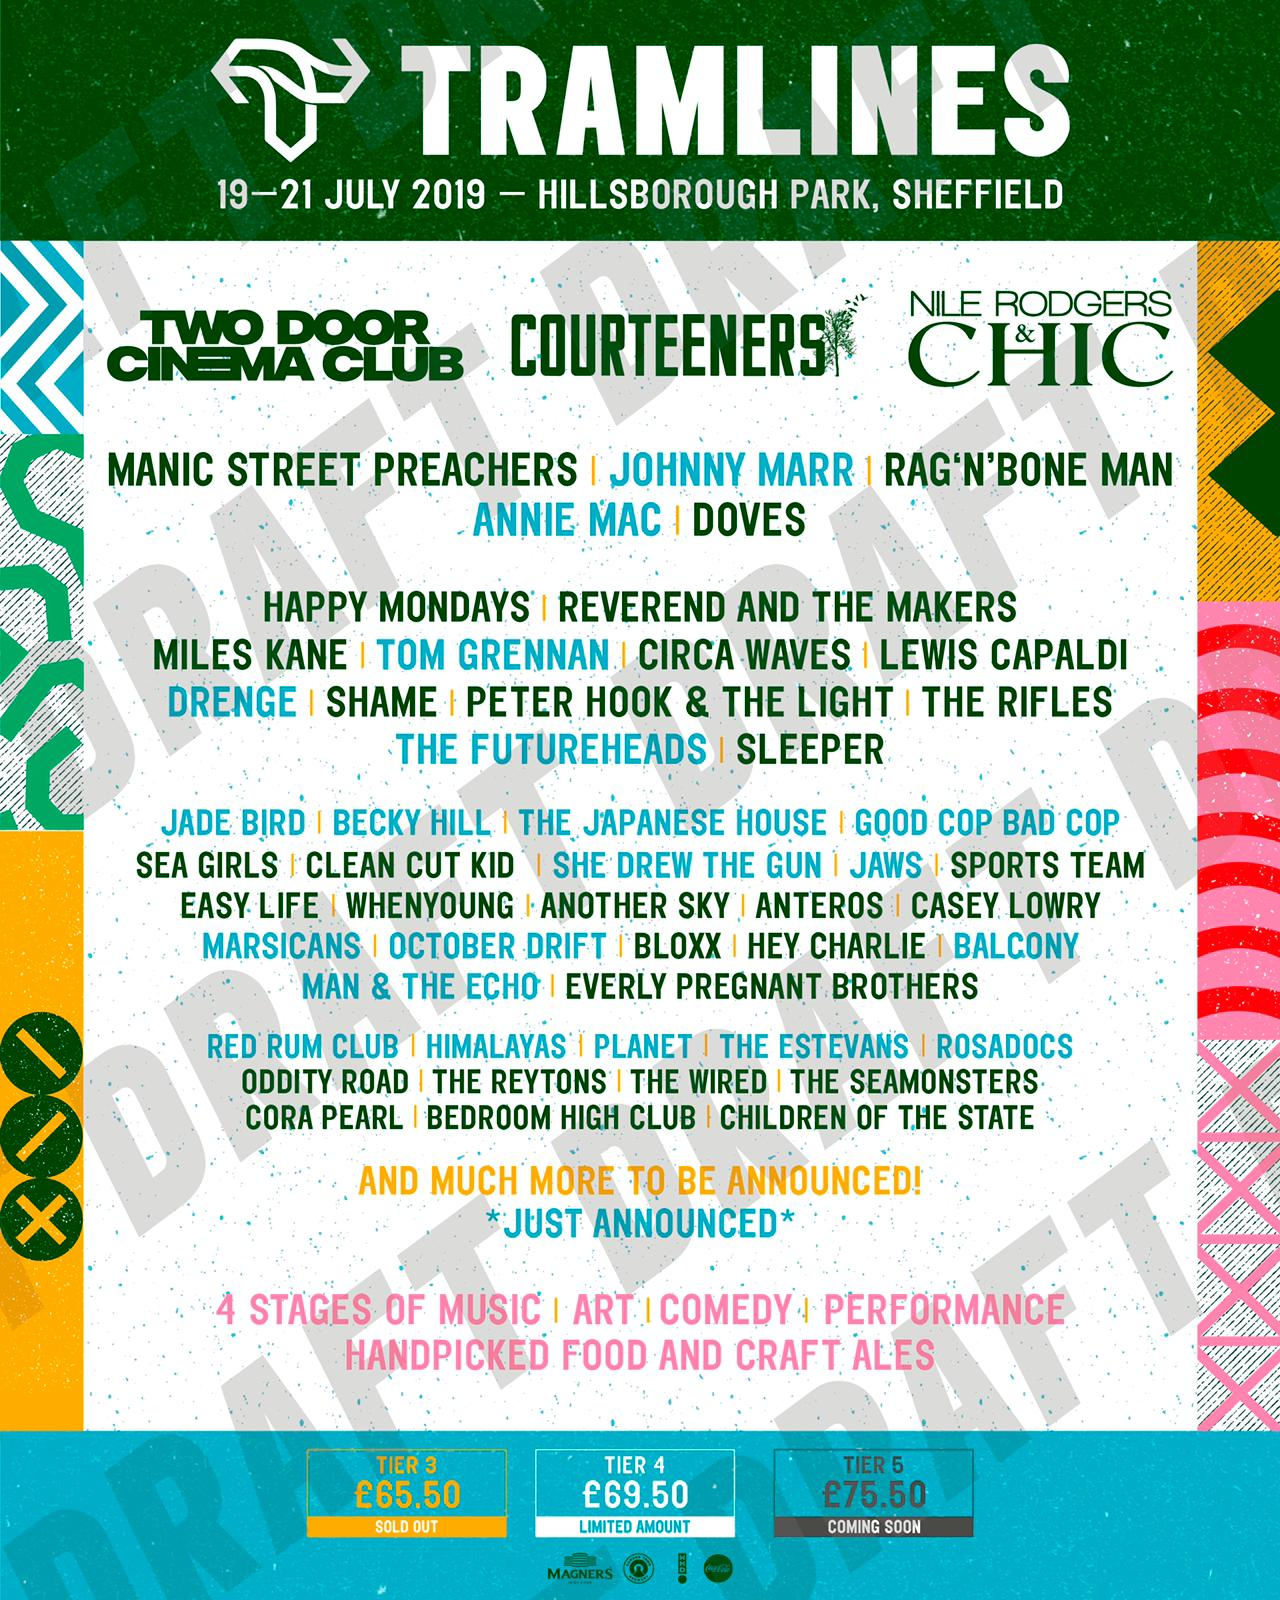 Tramlines Announcement